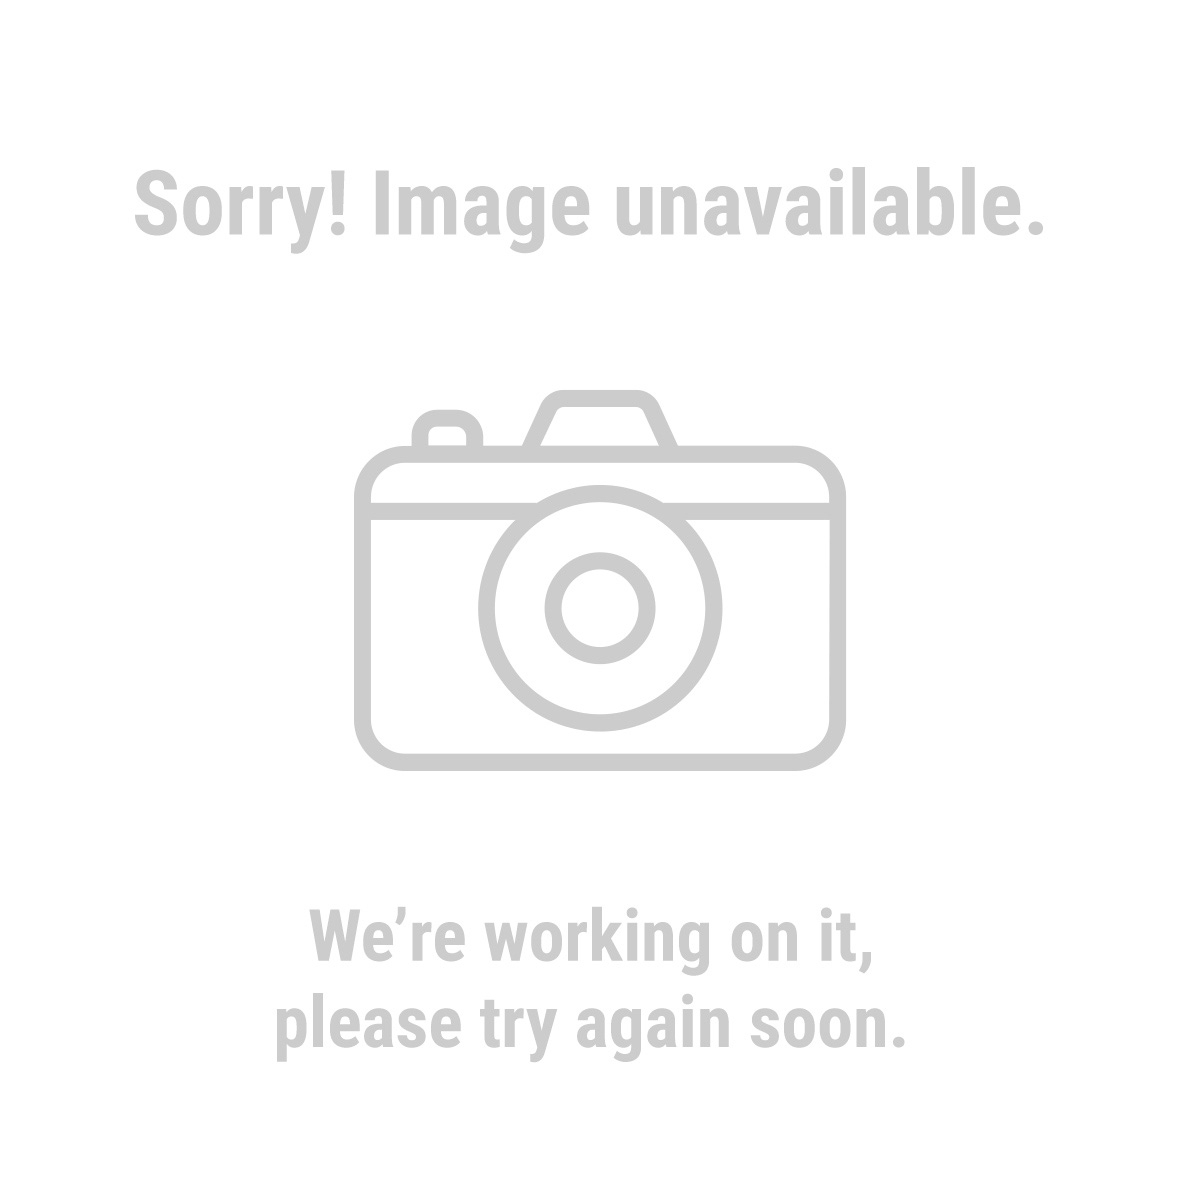 Central Pneumatic 69269 1/3 Horsepower, 3 Gallon, 100 PSI PSI Oilless Air Compressor